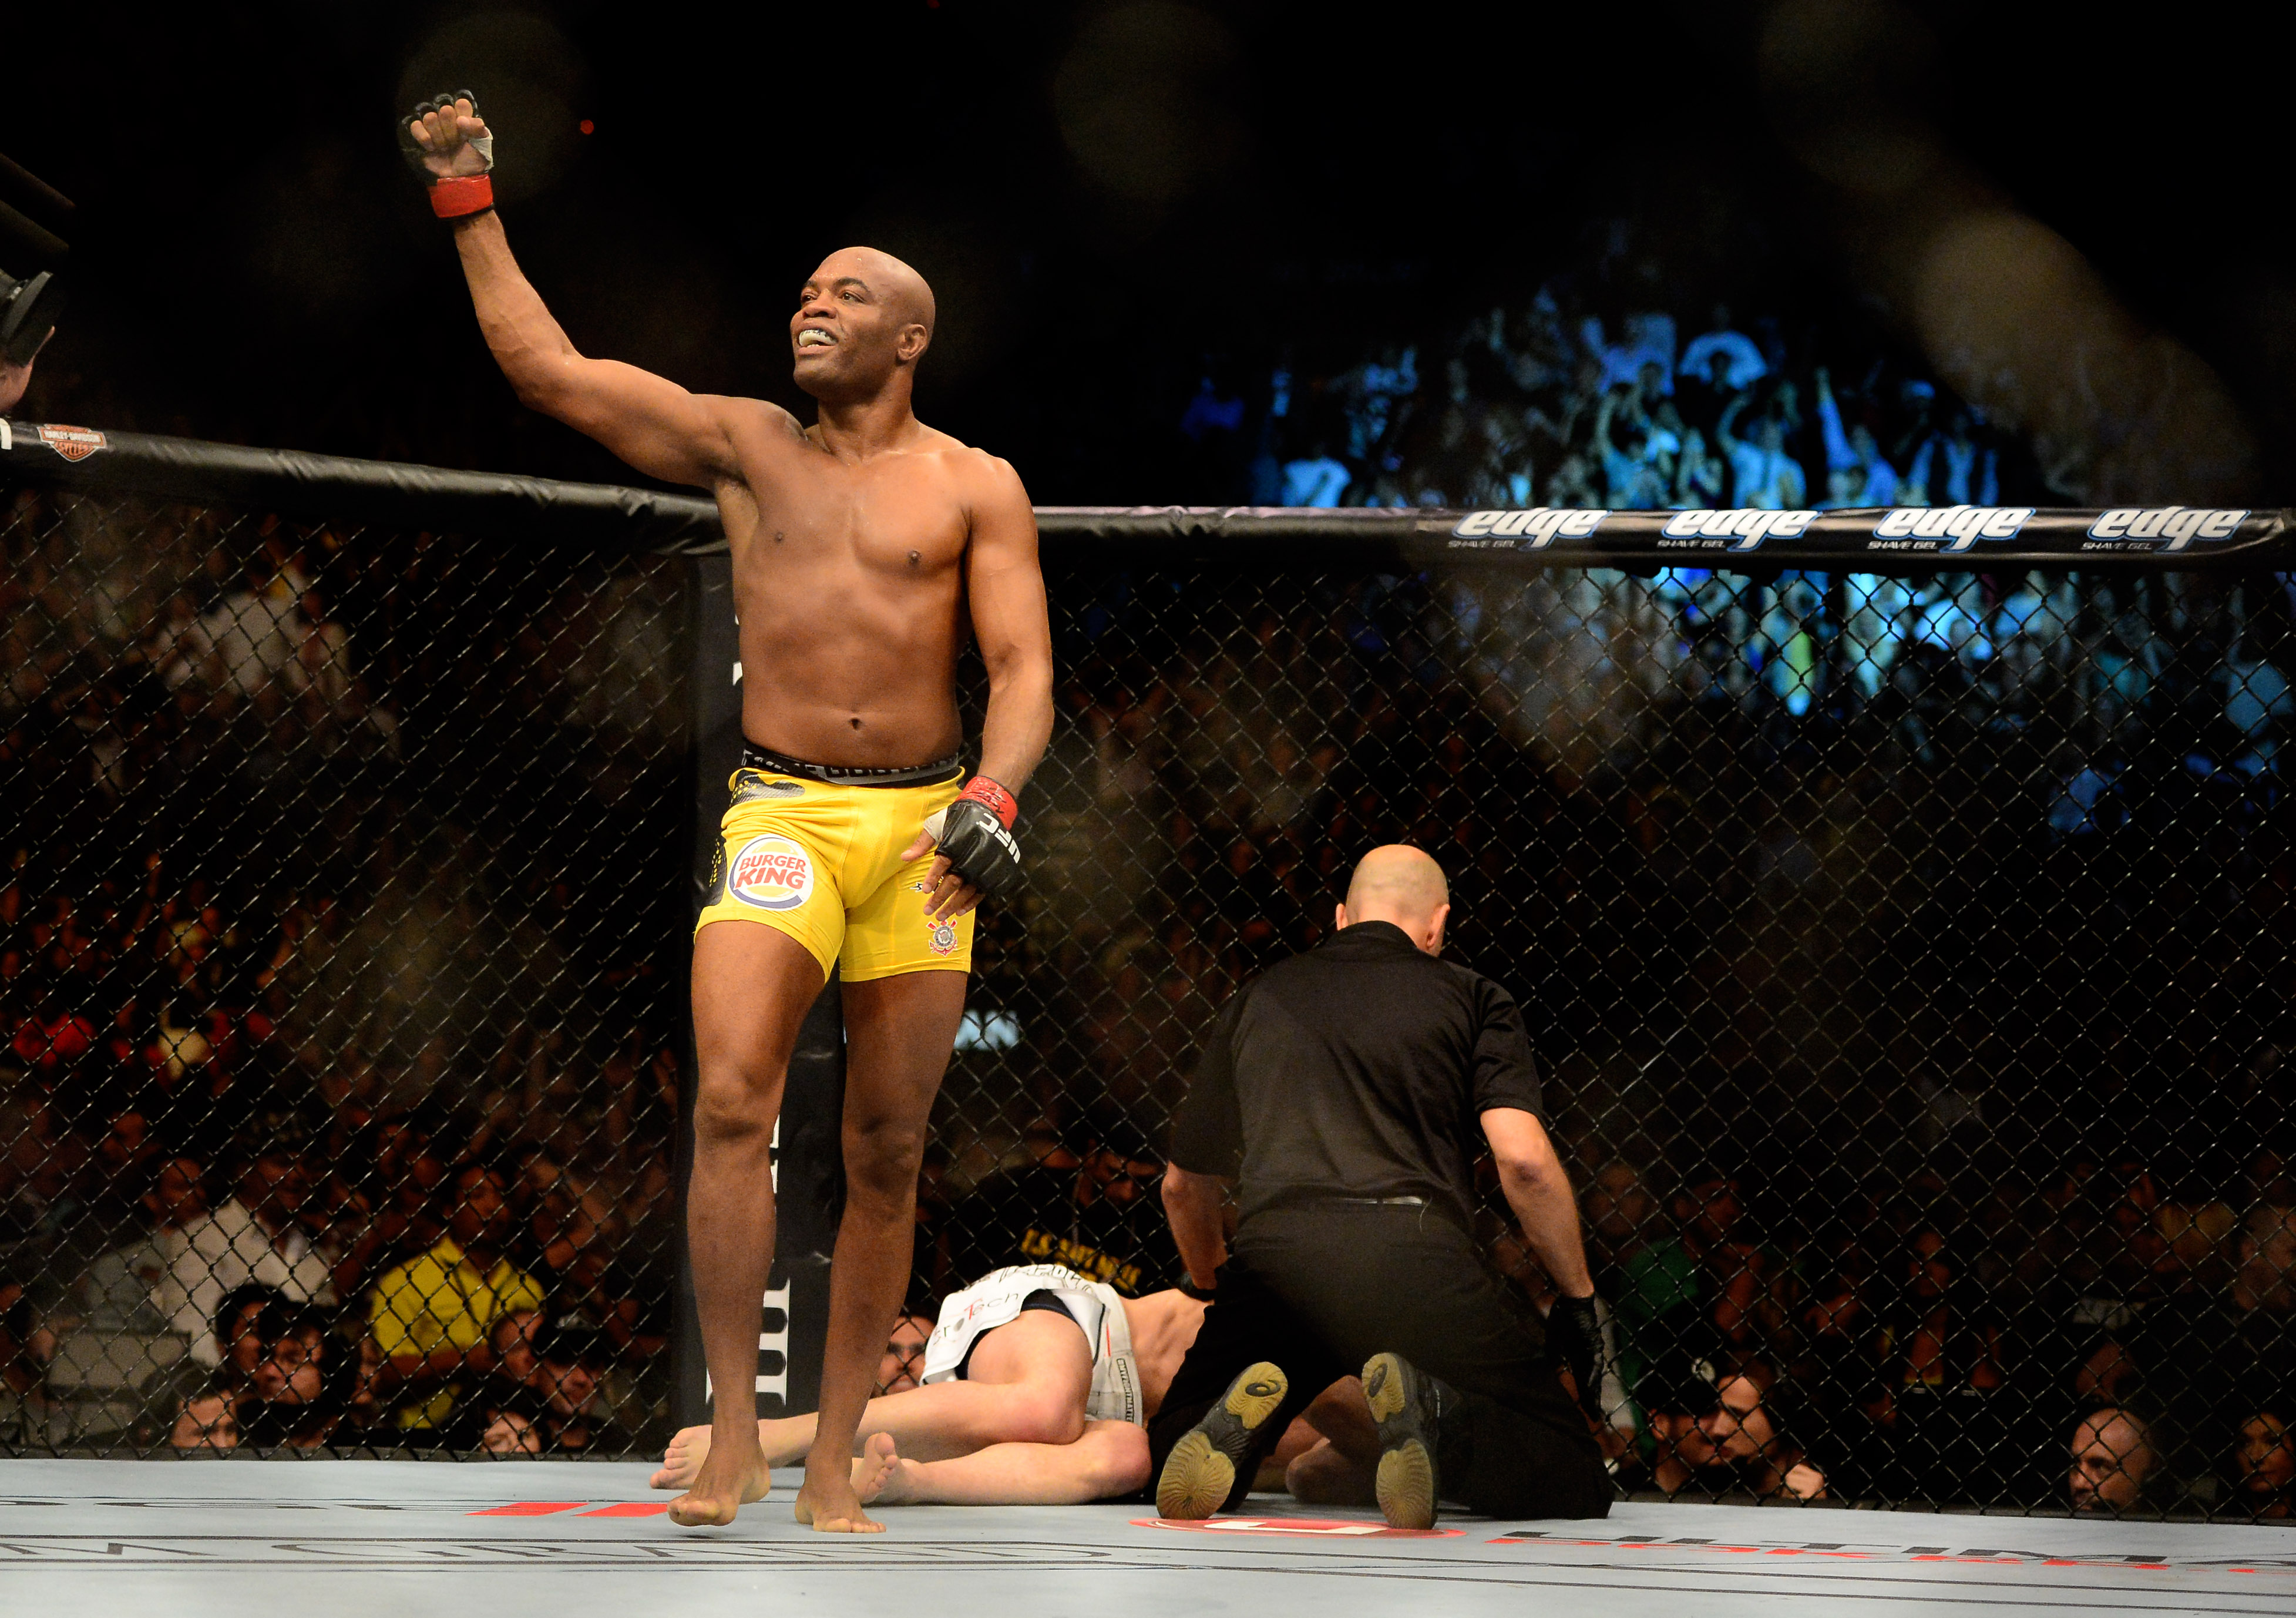 Anderson Silva celebrates after beating Stephan Bonnar for his 16th straight UFC win. (USPW)